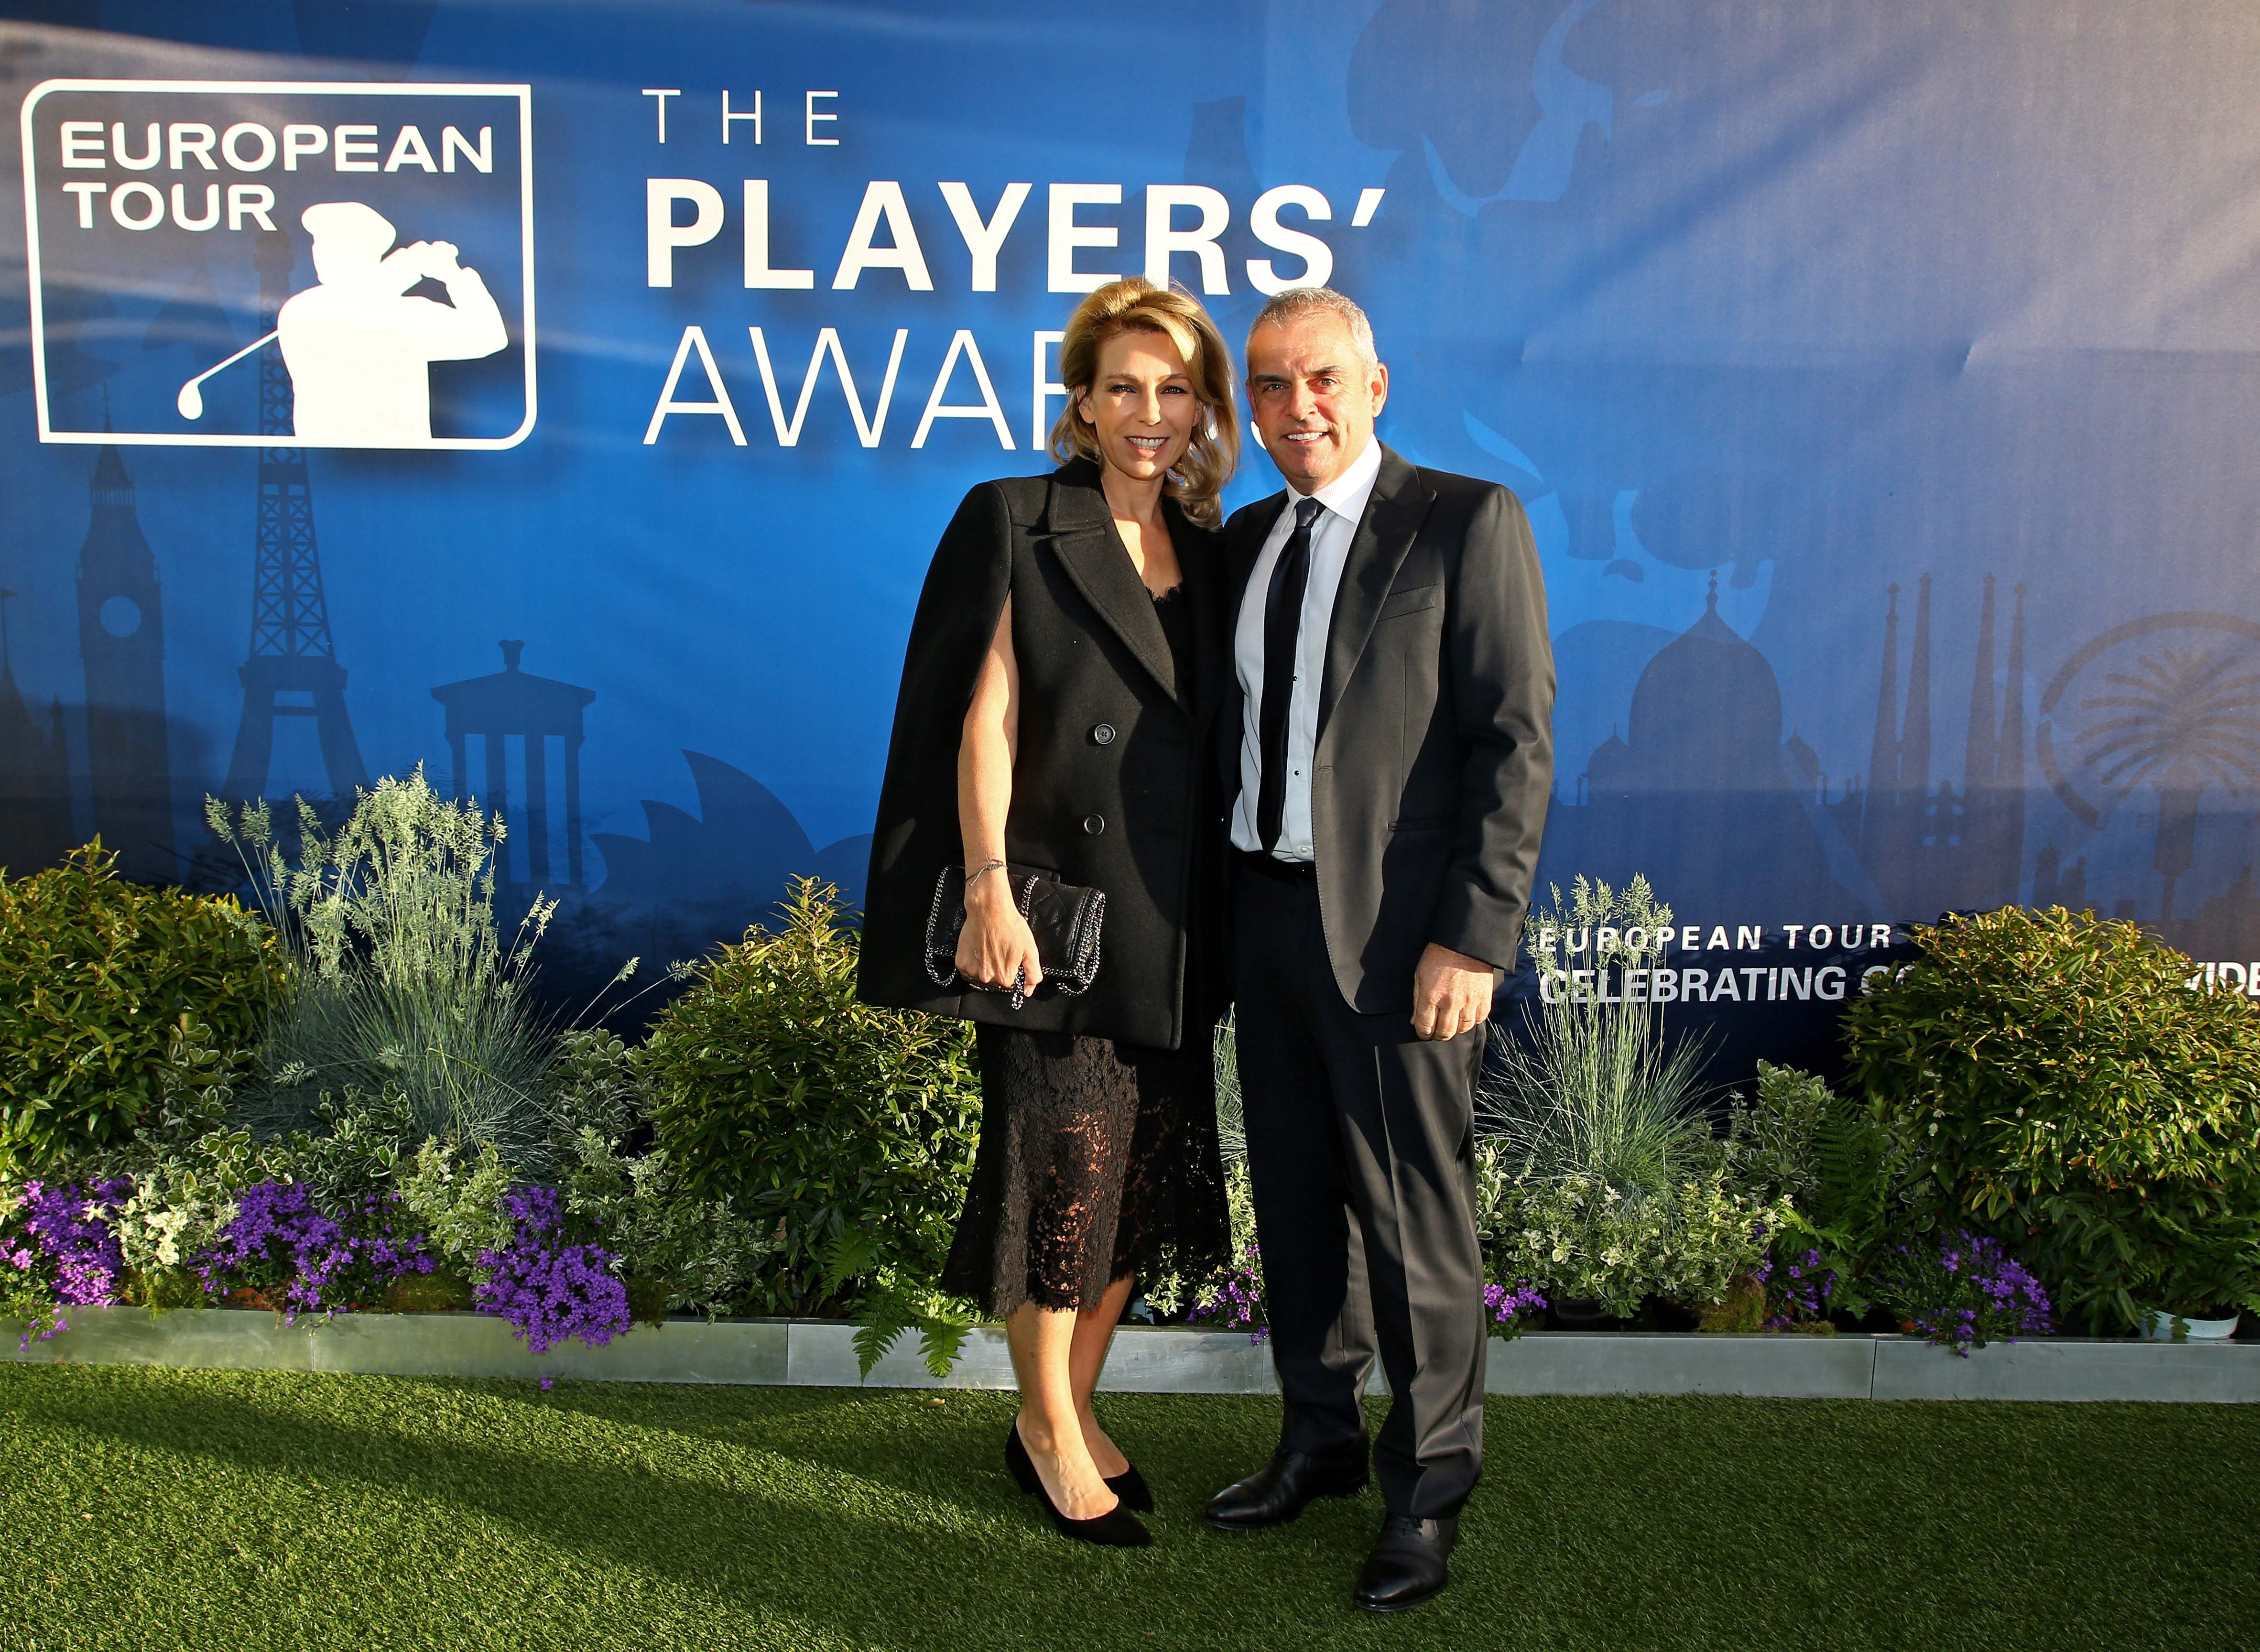 Paul McGinley and his wife Alison